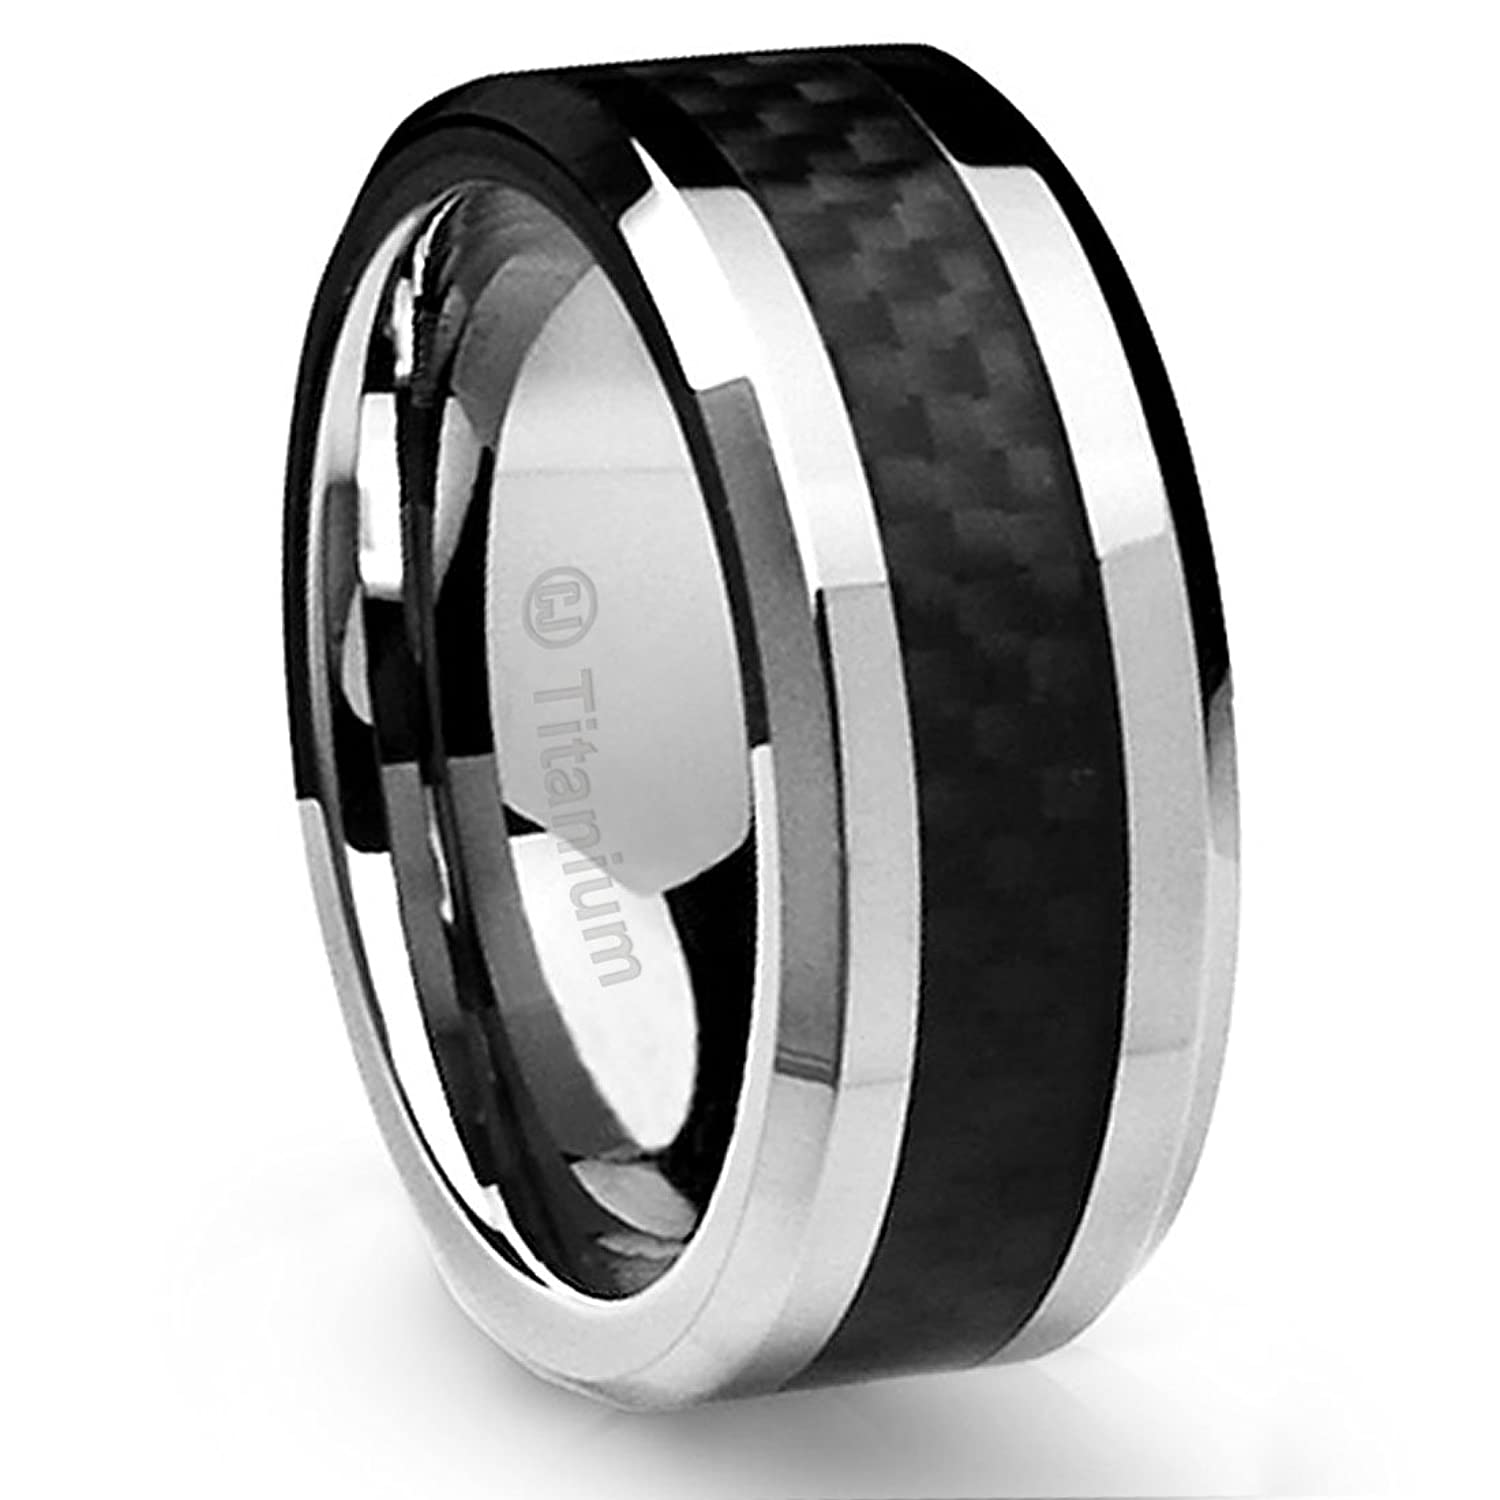 dp ulxgedvl tungsten carbon carbide edge amazon wedding with white rings beveled ring fiber com luxurious jewelry